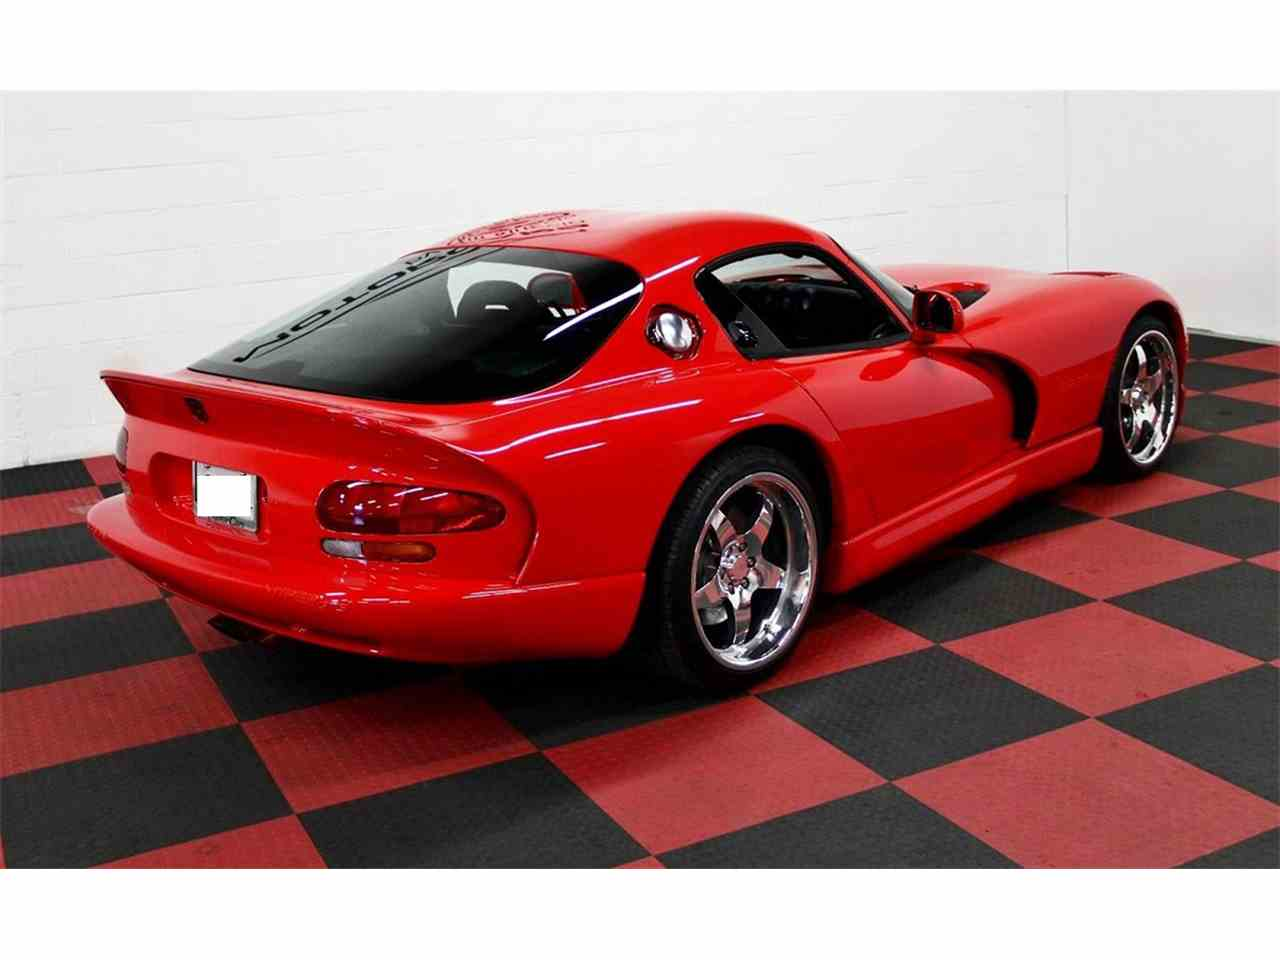 Large Picture of 1998 Dodge Viper - $49,000.00 - LSFT